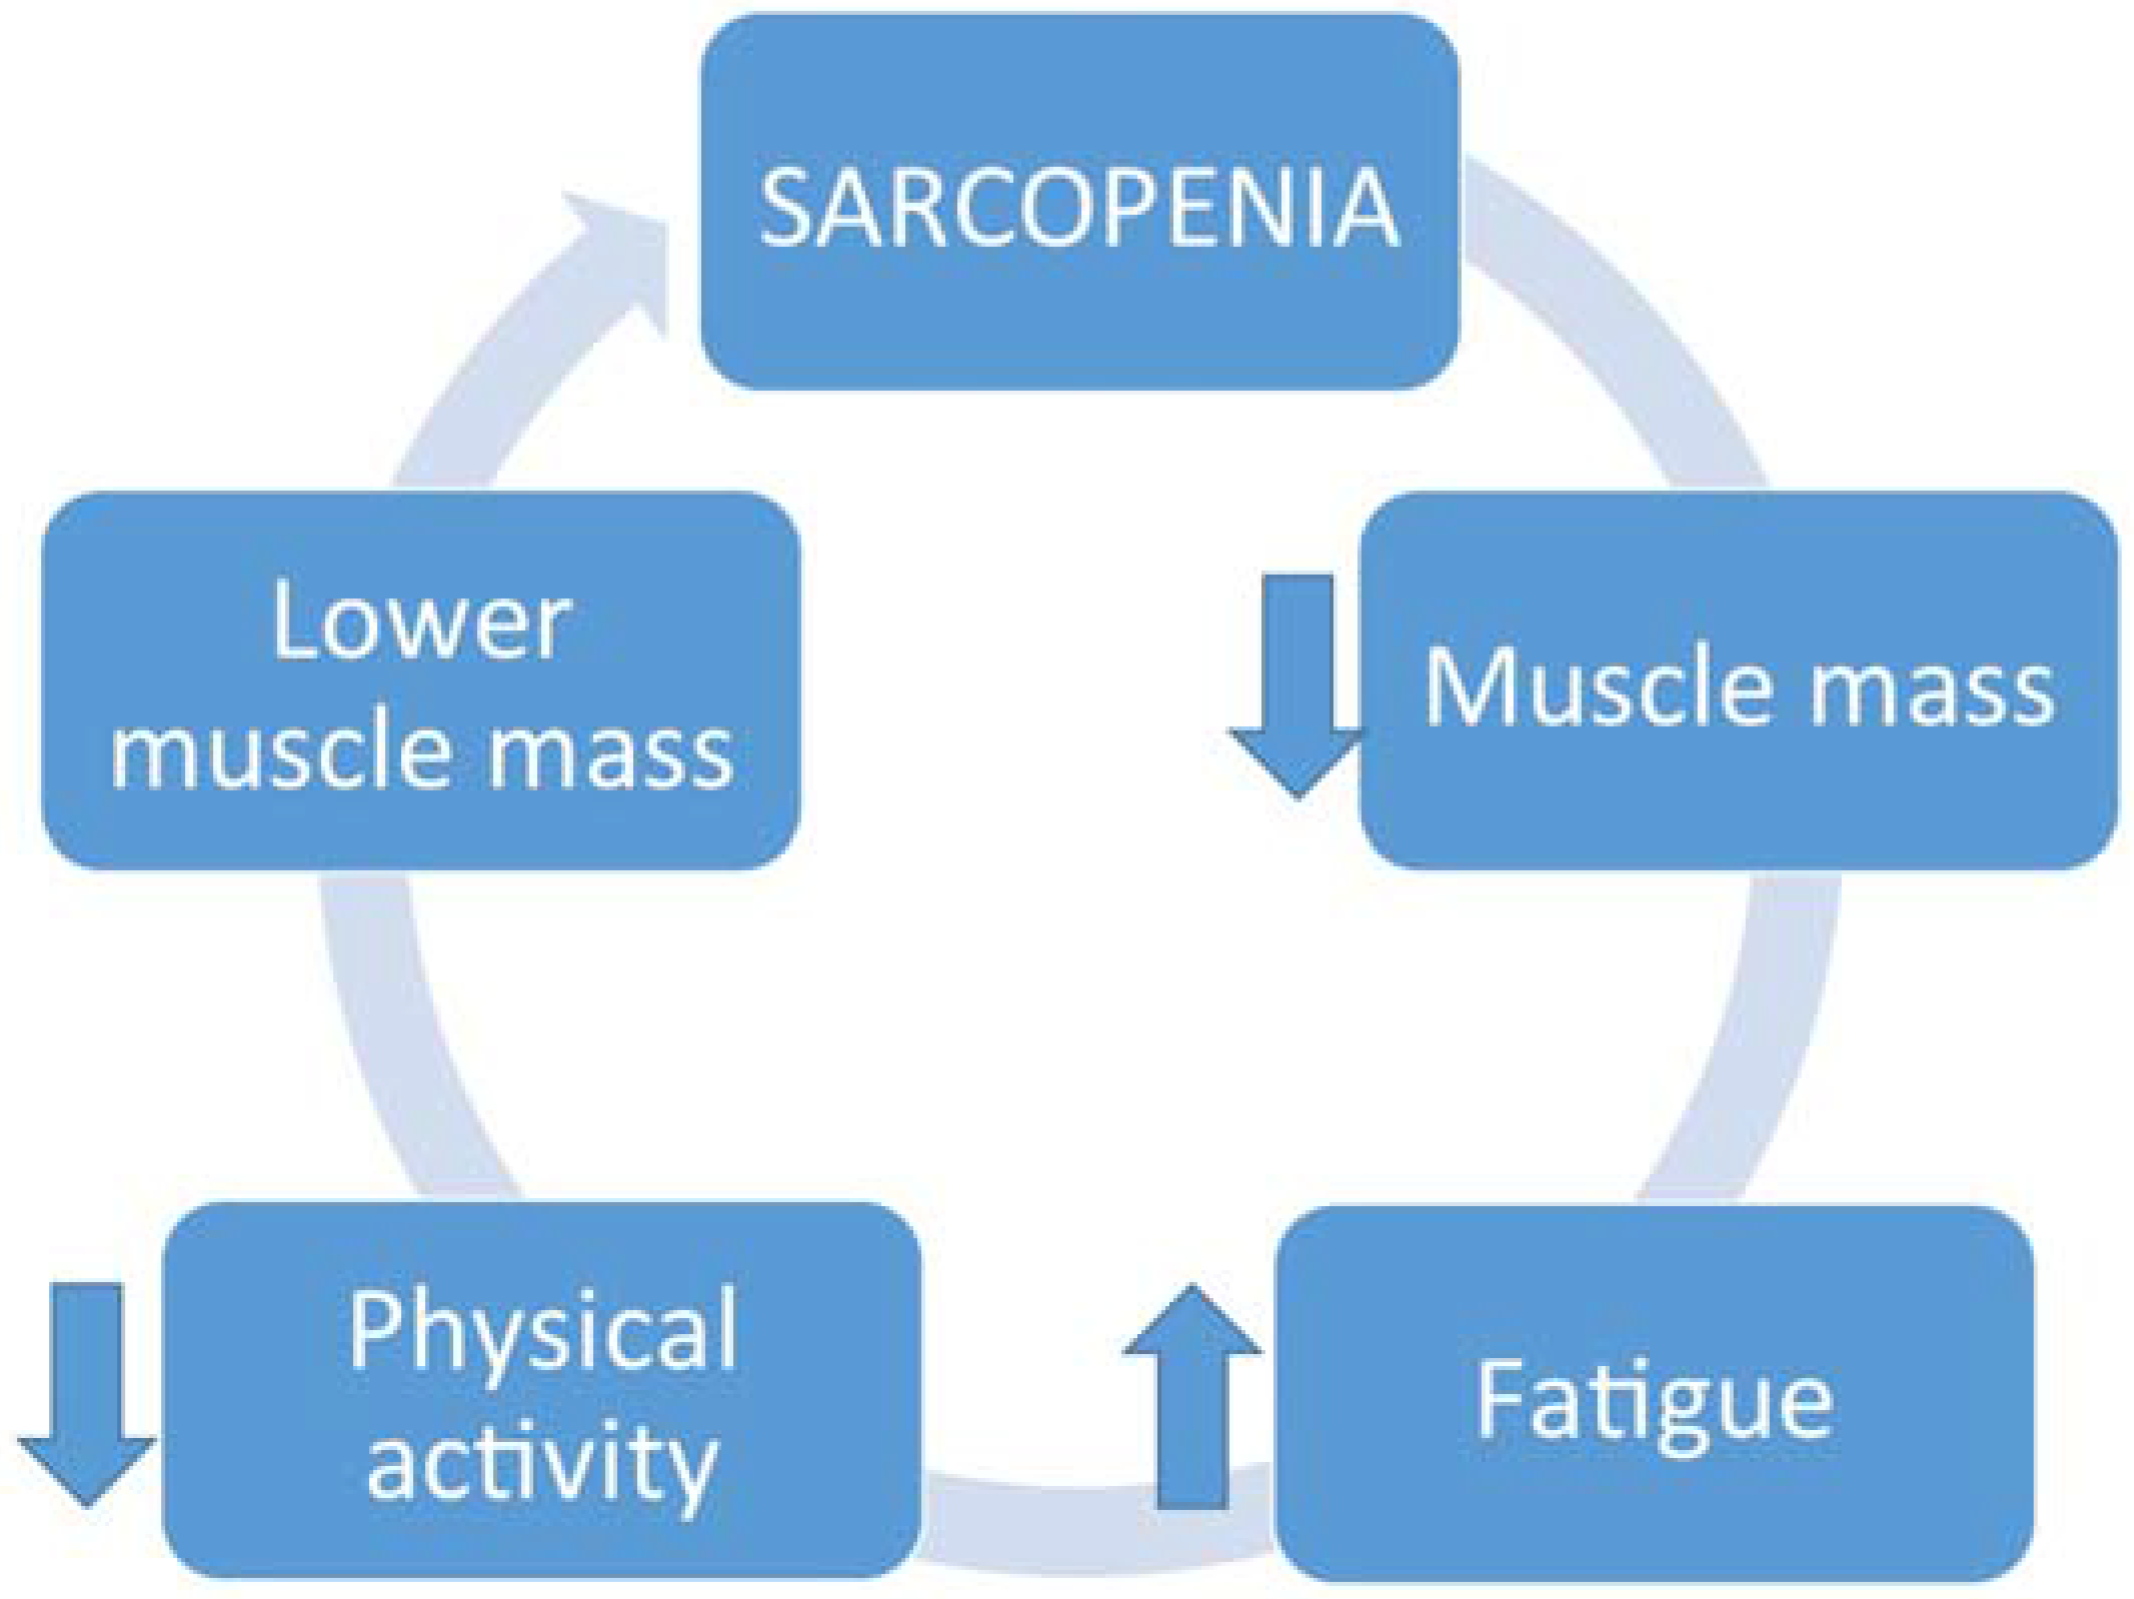 Muscle increase or decrease